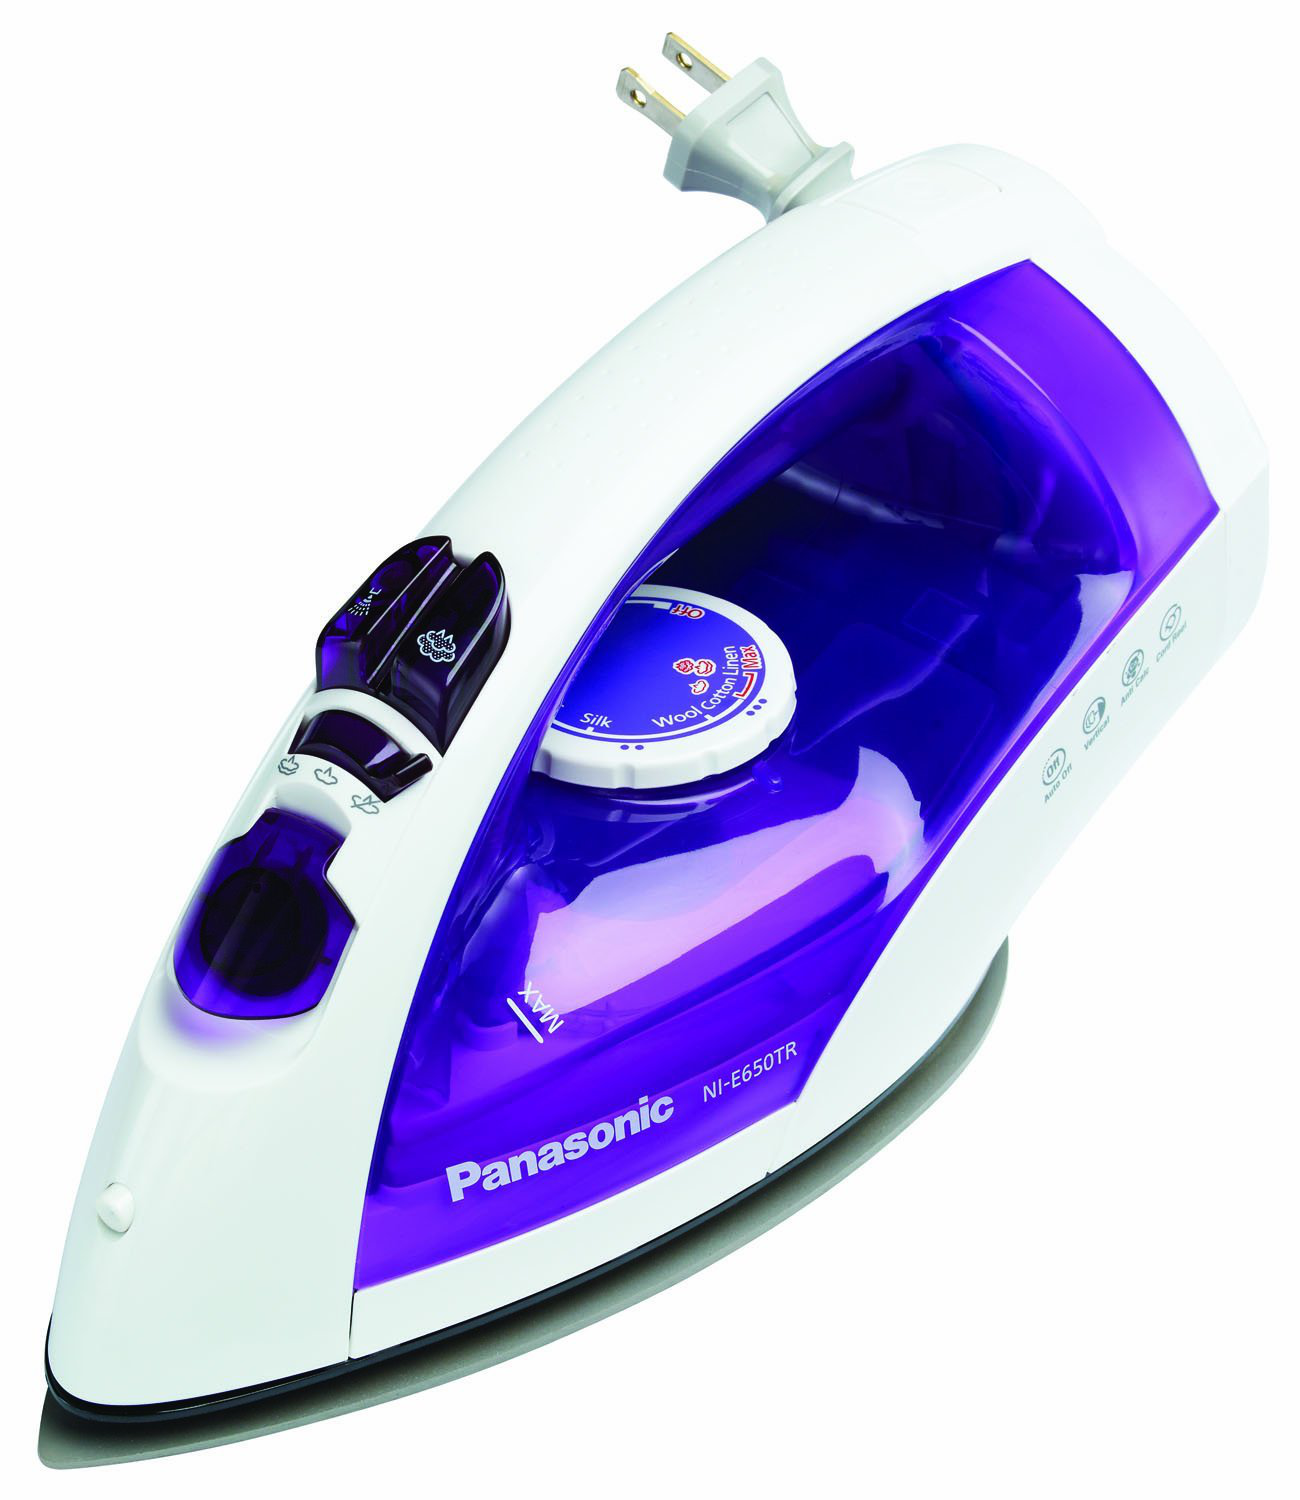 Panasonic U Shaped Steam Iron NIE650